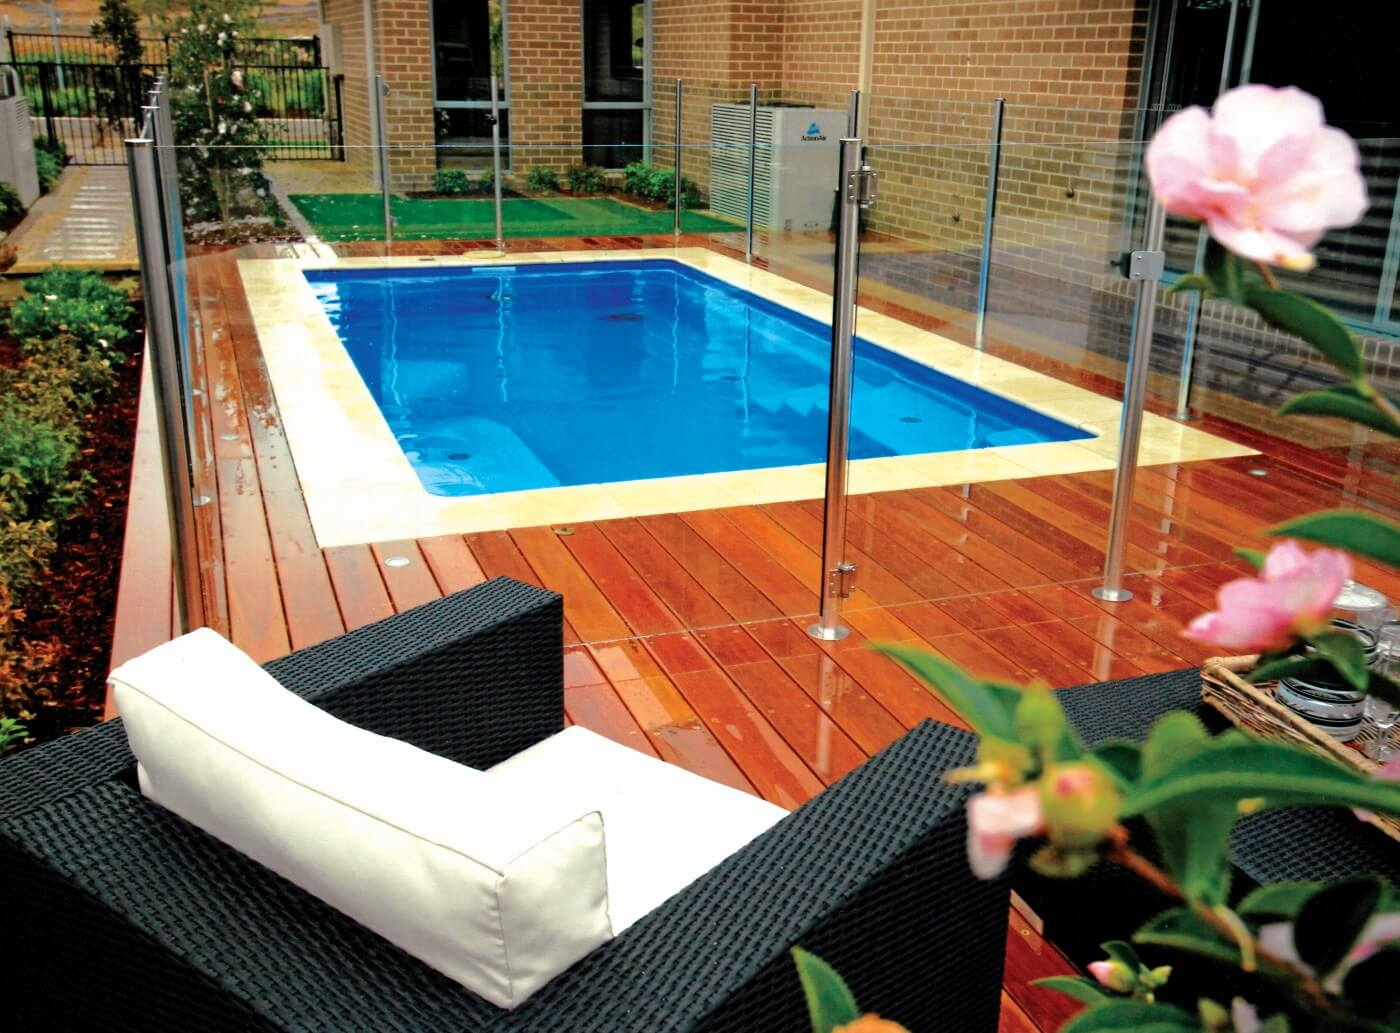 The Best Pool Design Ideas For Your Backyard Compass Pools Australia inside Pool And Backyard Design Ideas